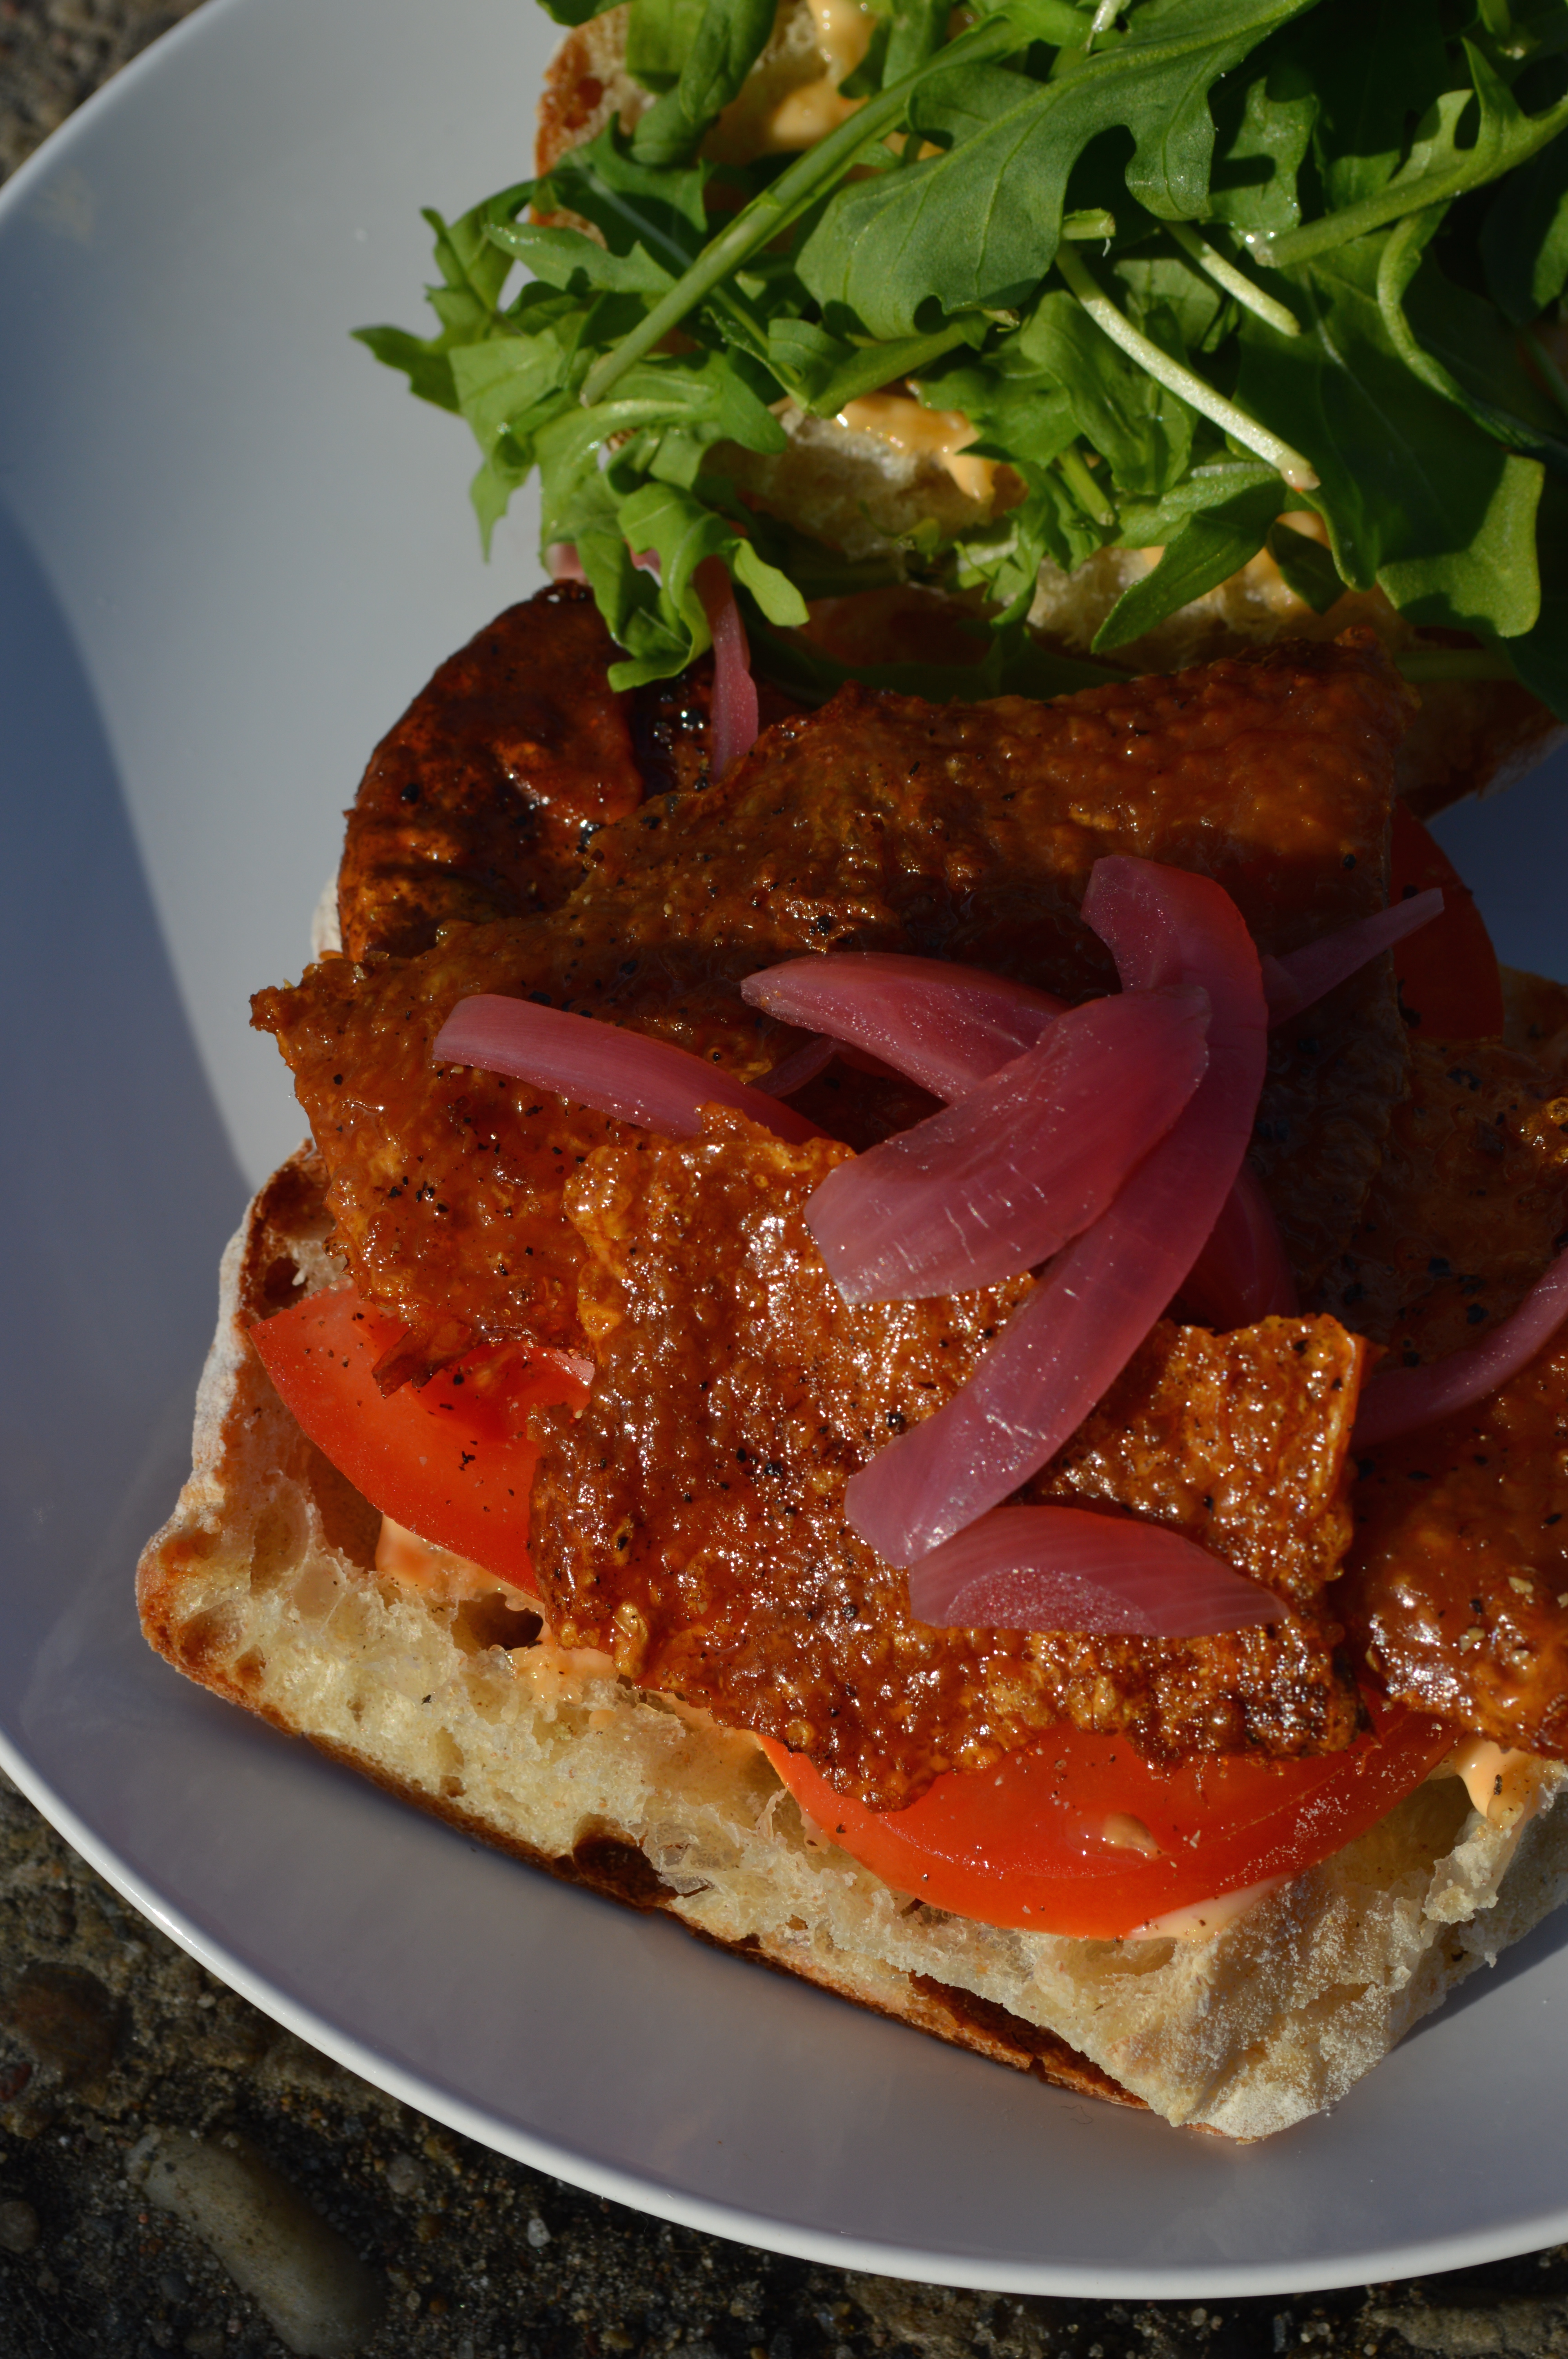 A sandwich made with tomato, chili mayo, pickled onion, and crispy chicken skin.